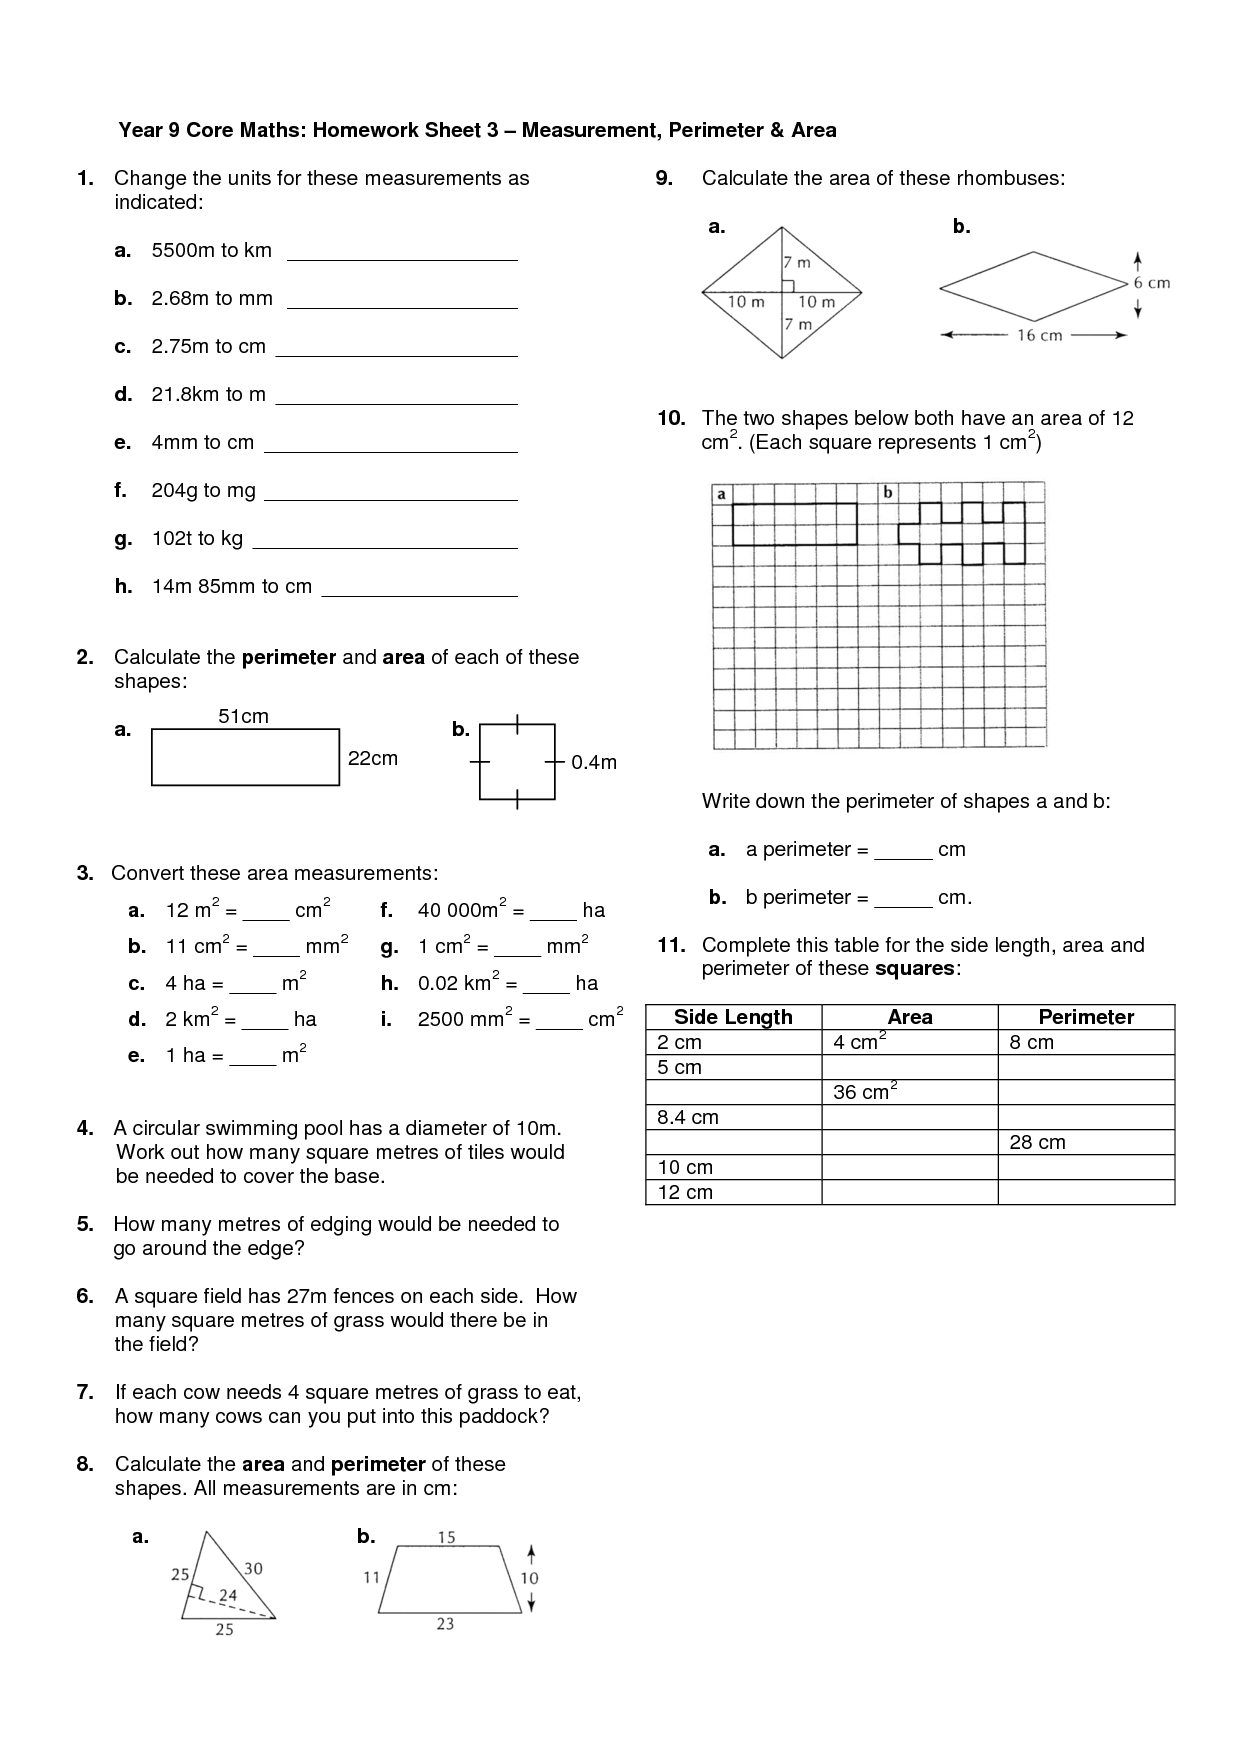 Worksheet Homework Sheets For Year 3 1000 images about 4th grade homework sheets on pinterest 5th math tiger and student centered resources